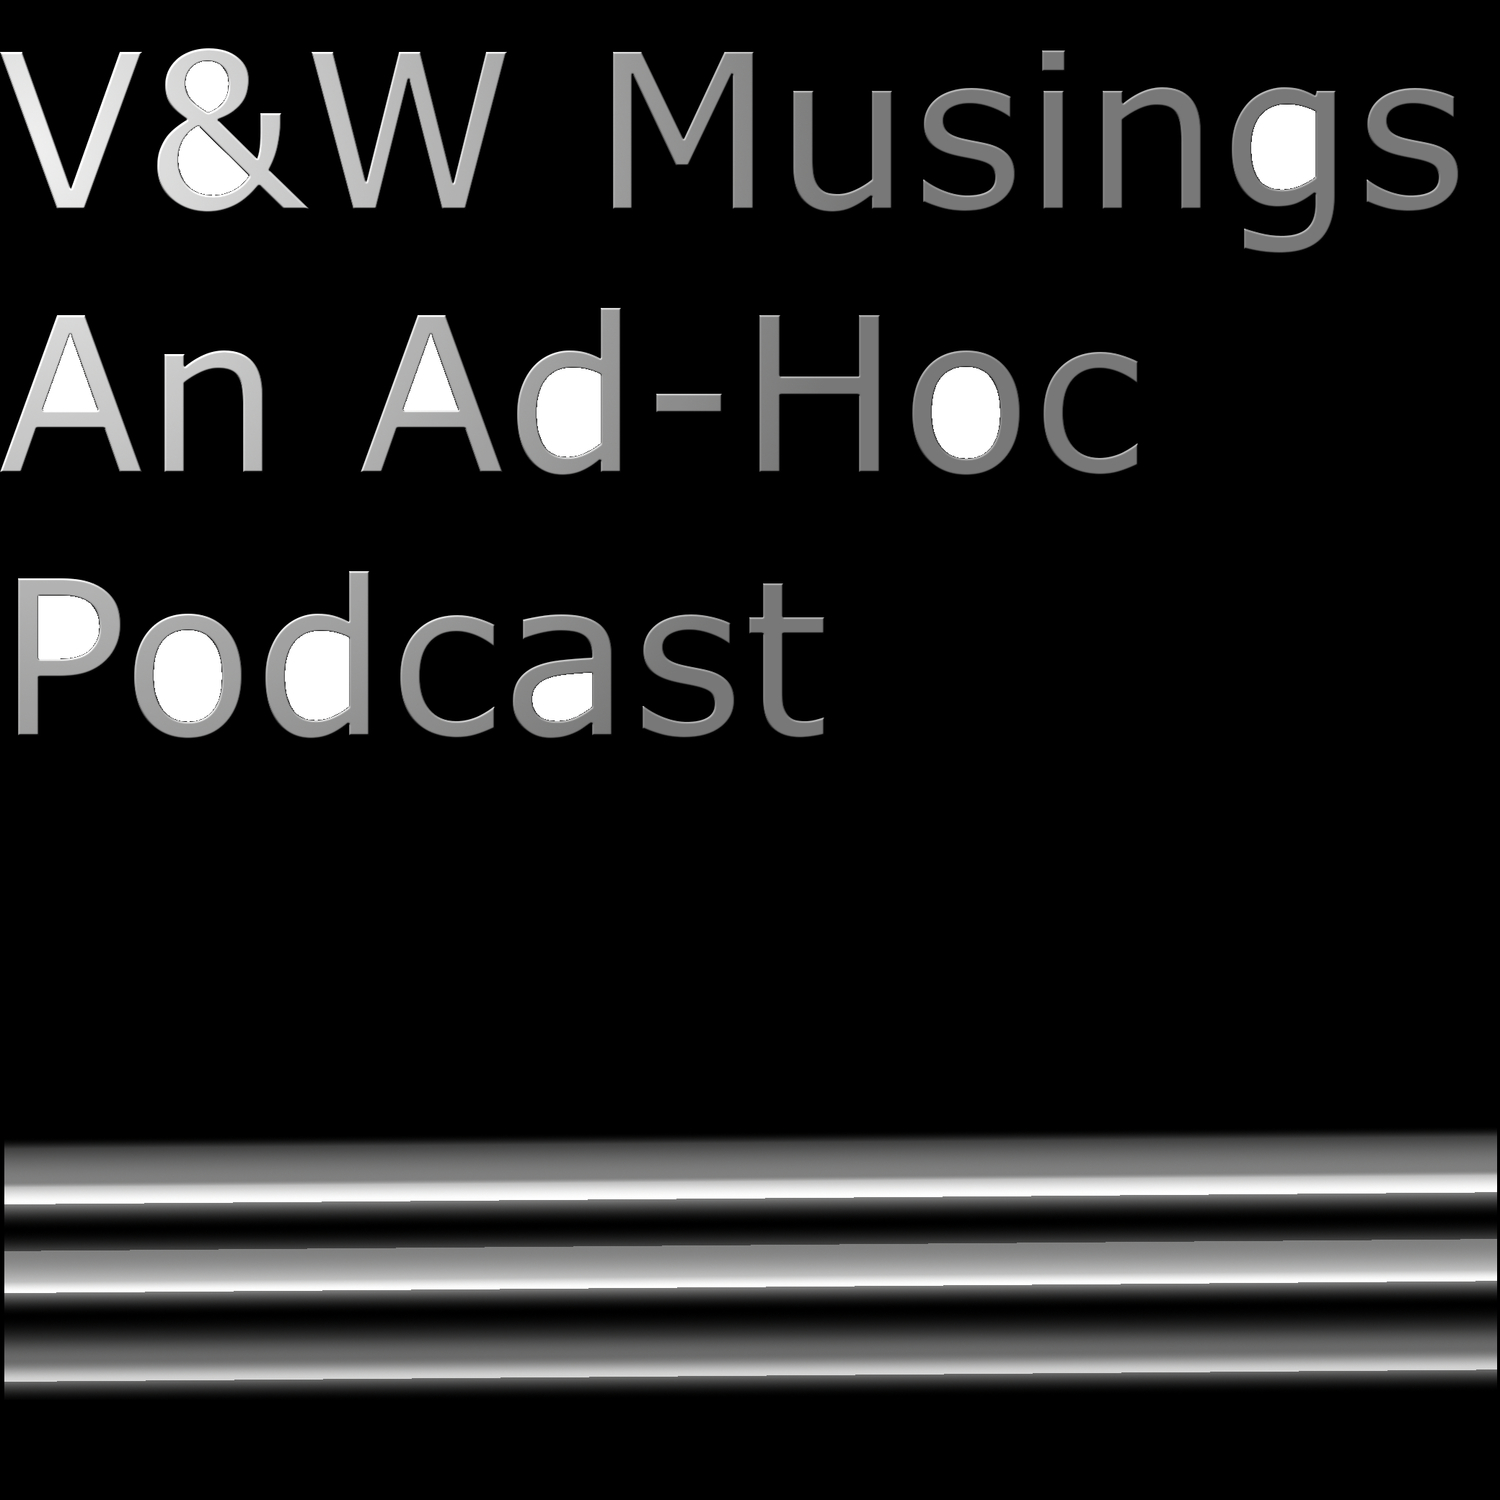 V&W Musings: An Ad-Hoc Podcast - tpwells.com